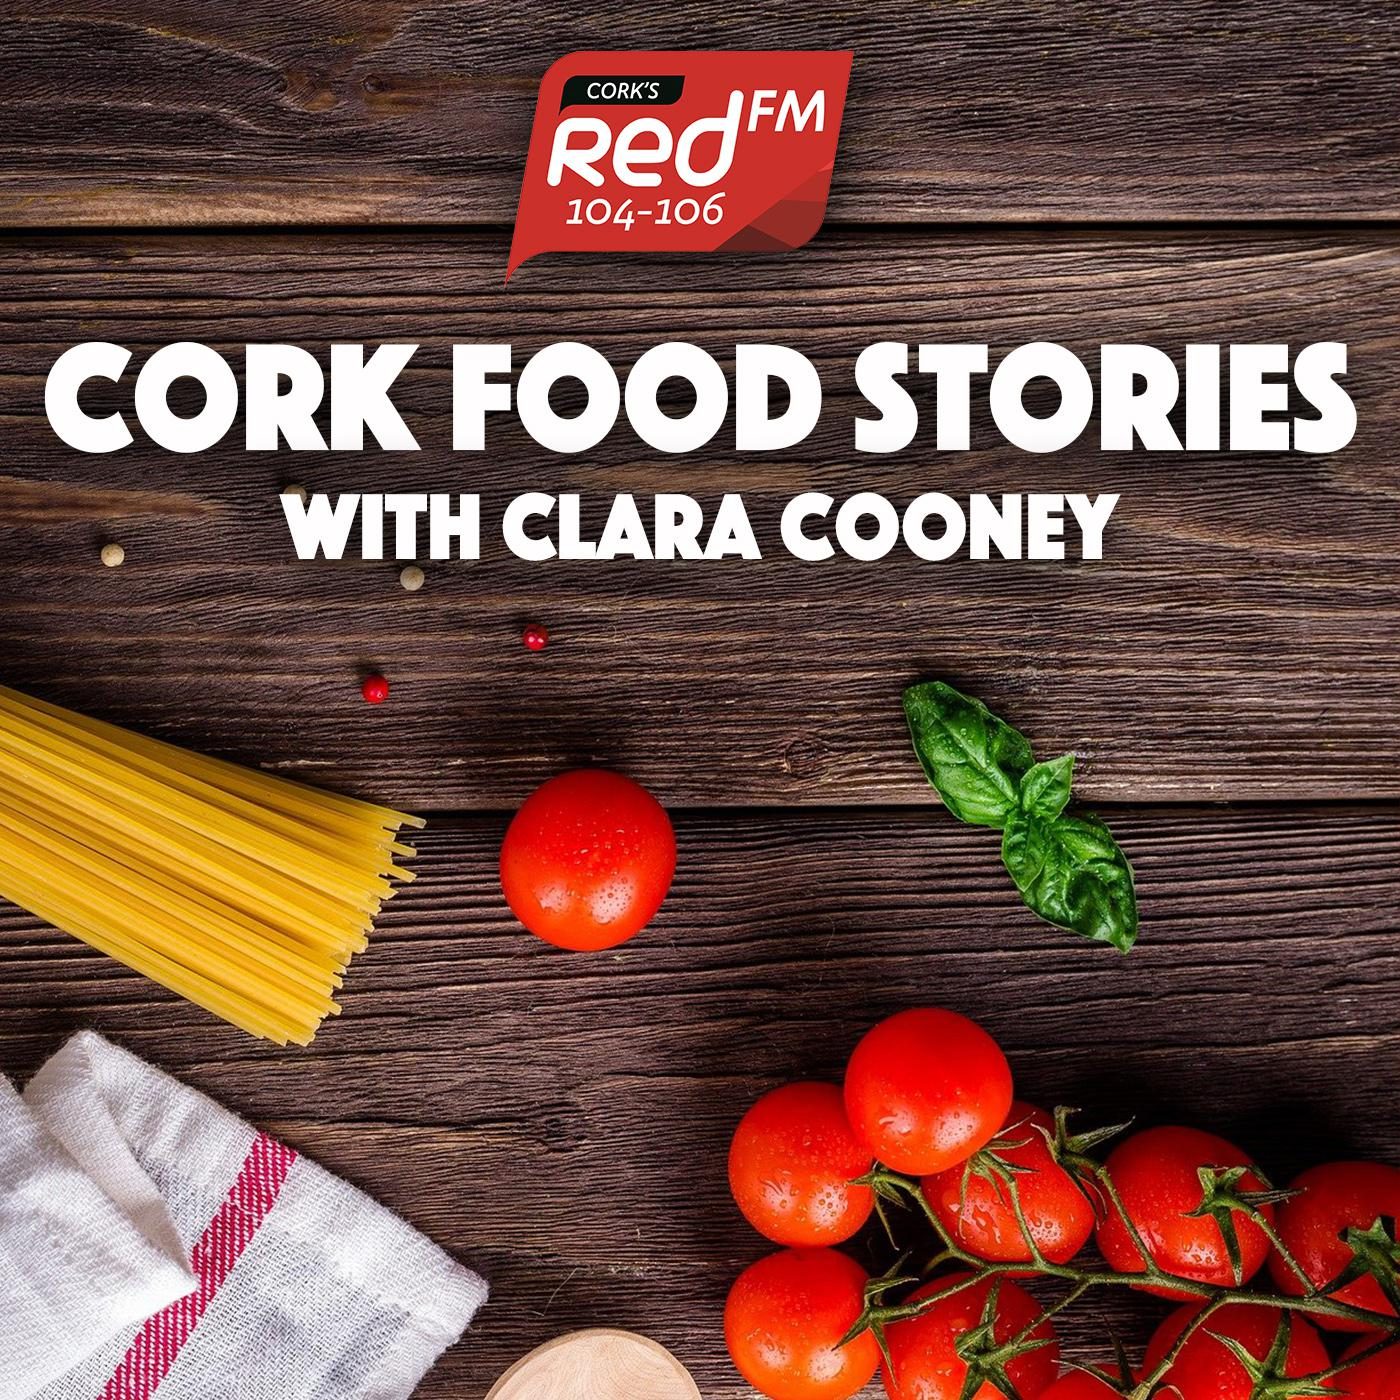 Cork Food Stories with Clara Cooney